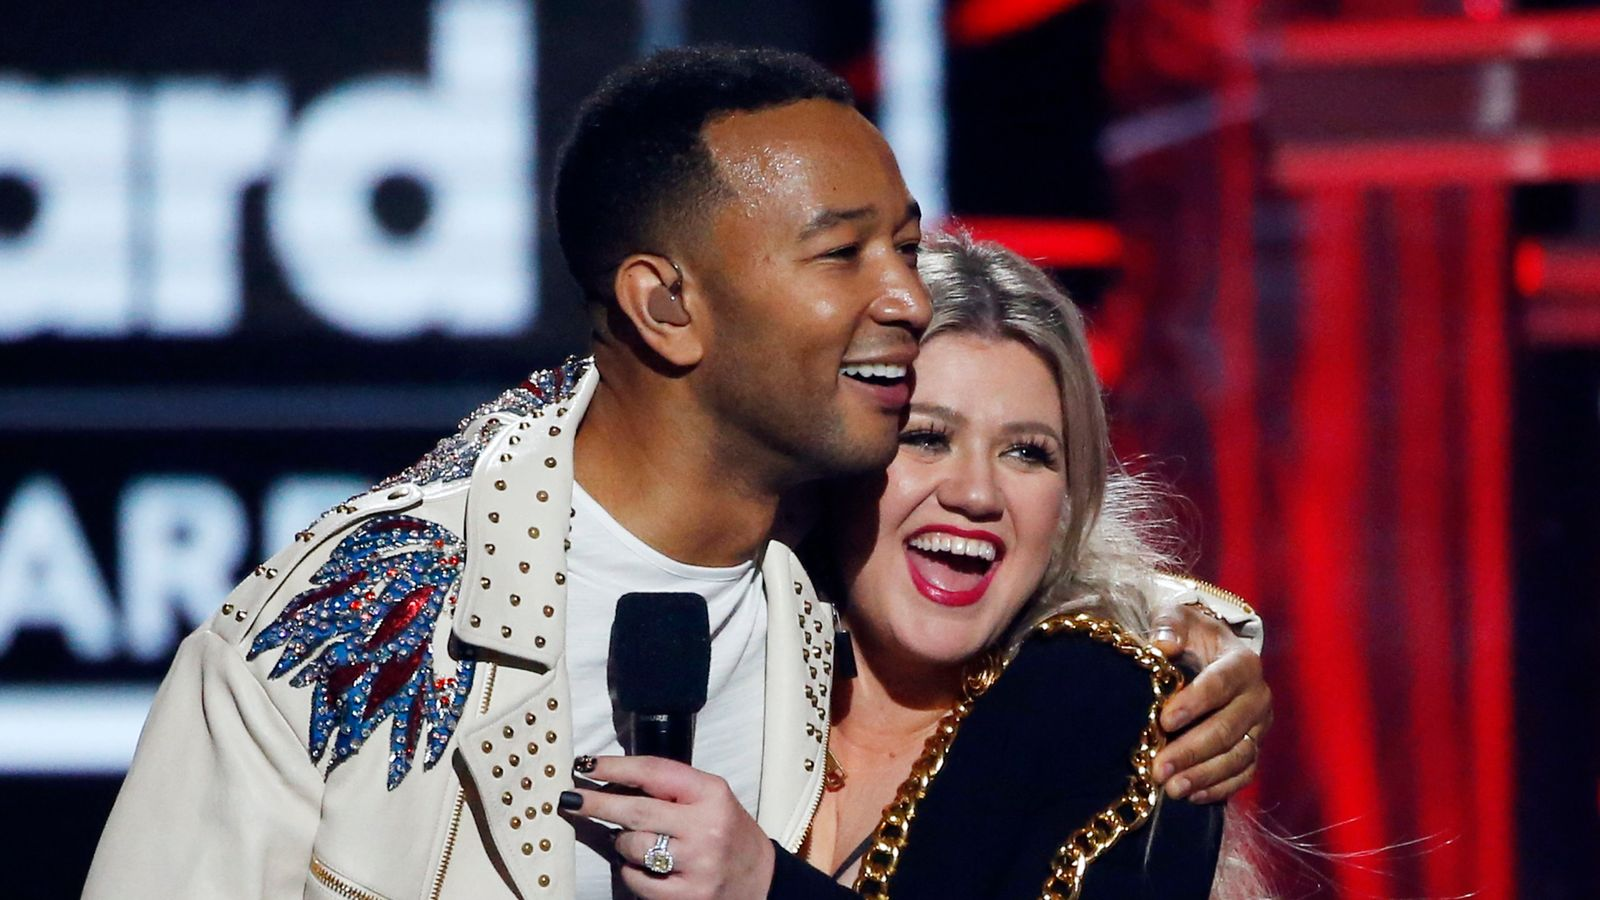 John Legend and Kelly Clarkson re-record Baby, It's Cold Outside for #MeToo era